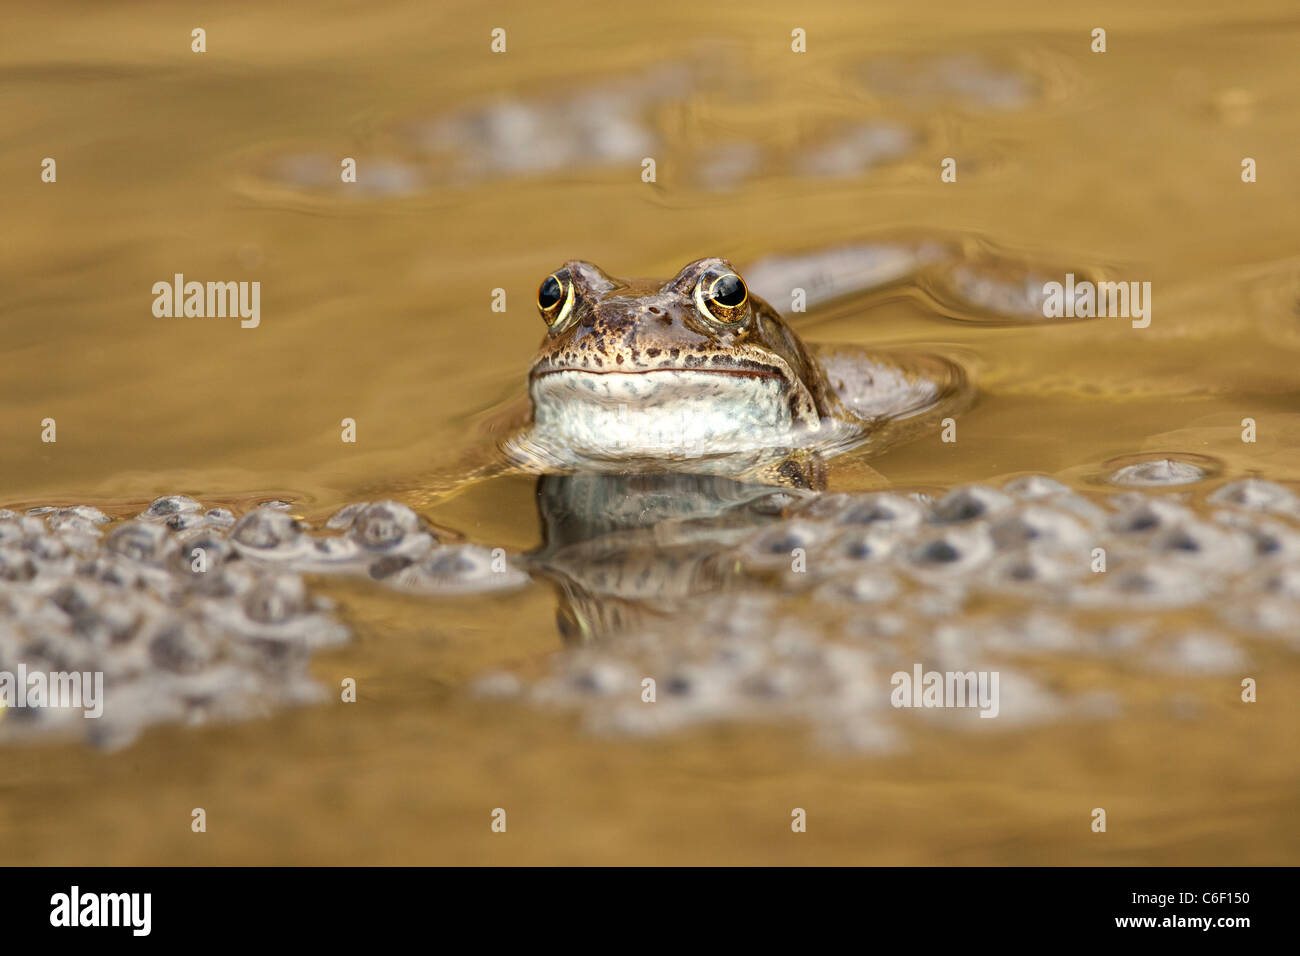 Rana temporaria - common frog with frog spawn - Stock Image